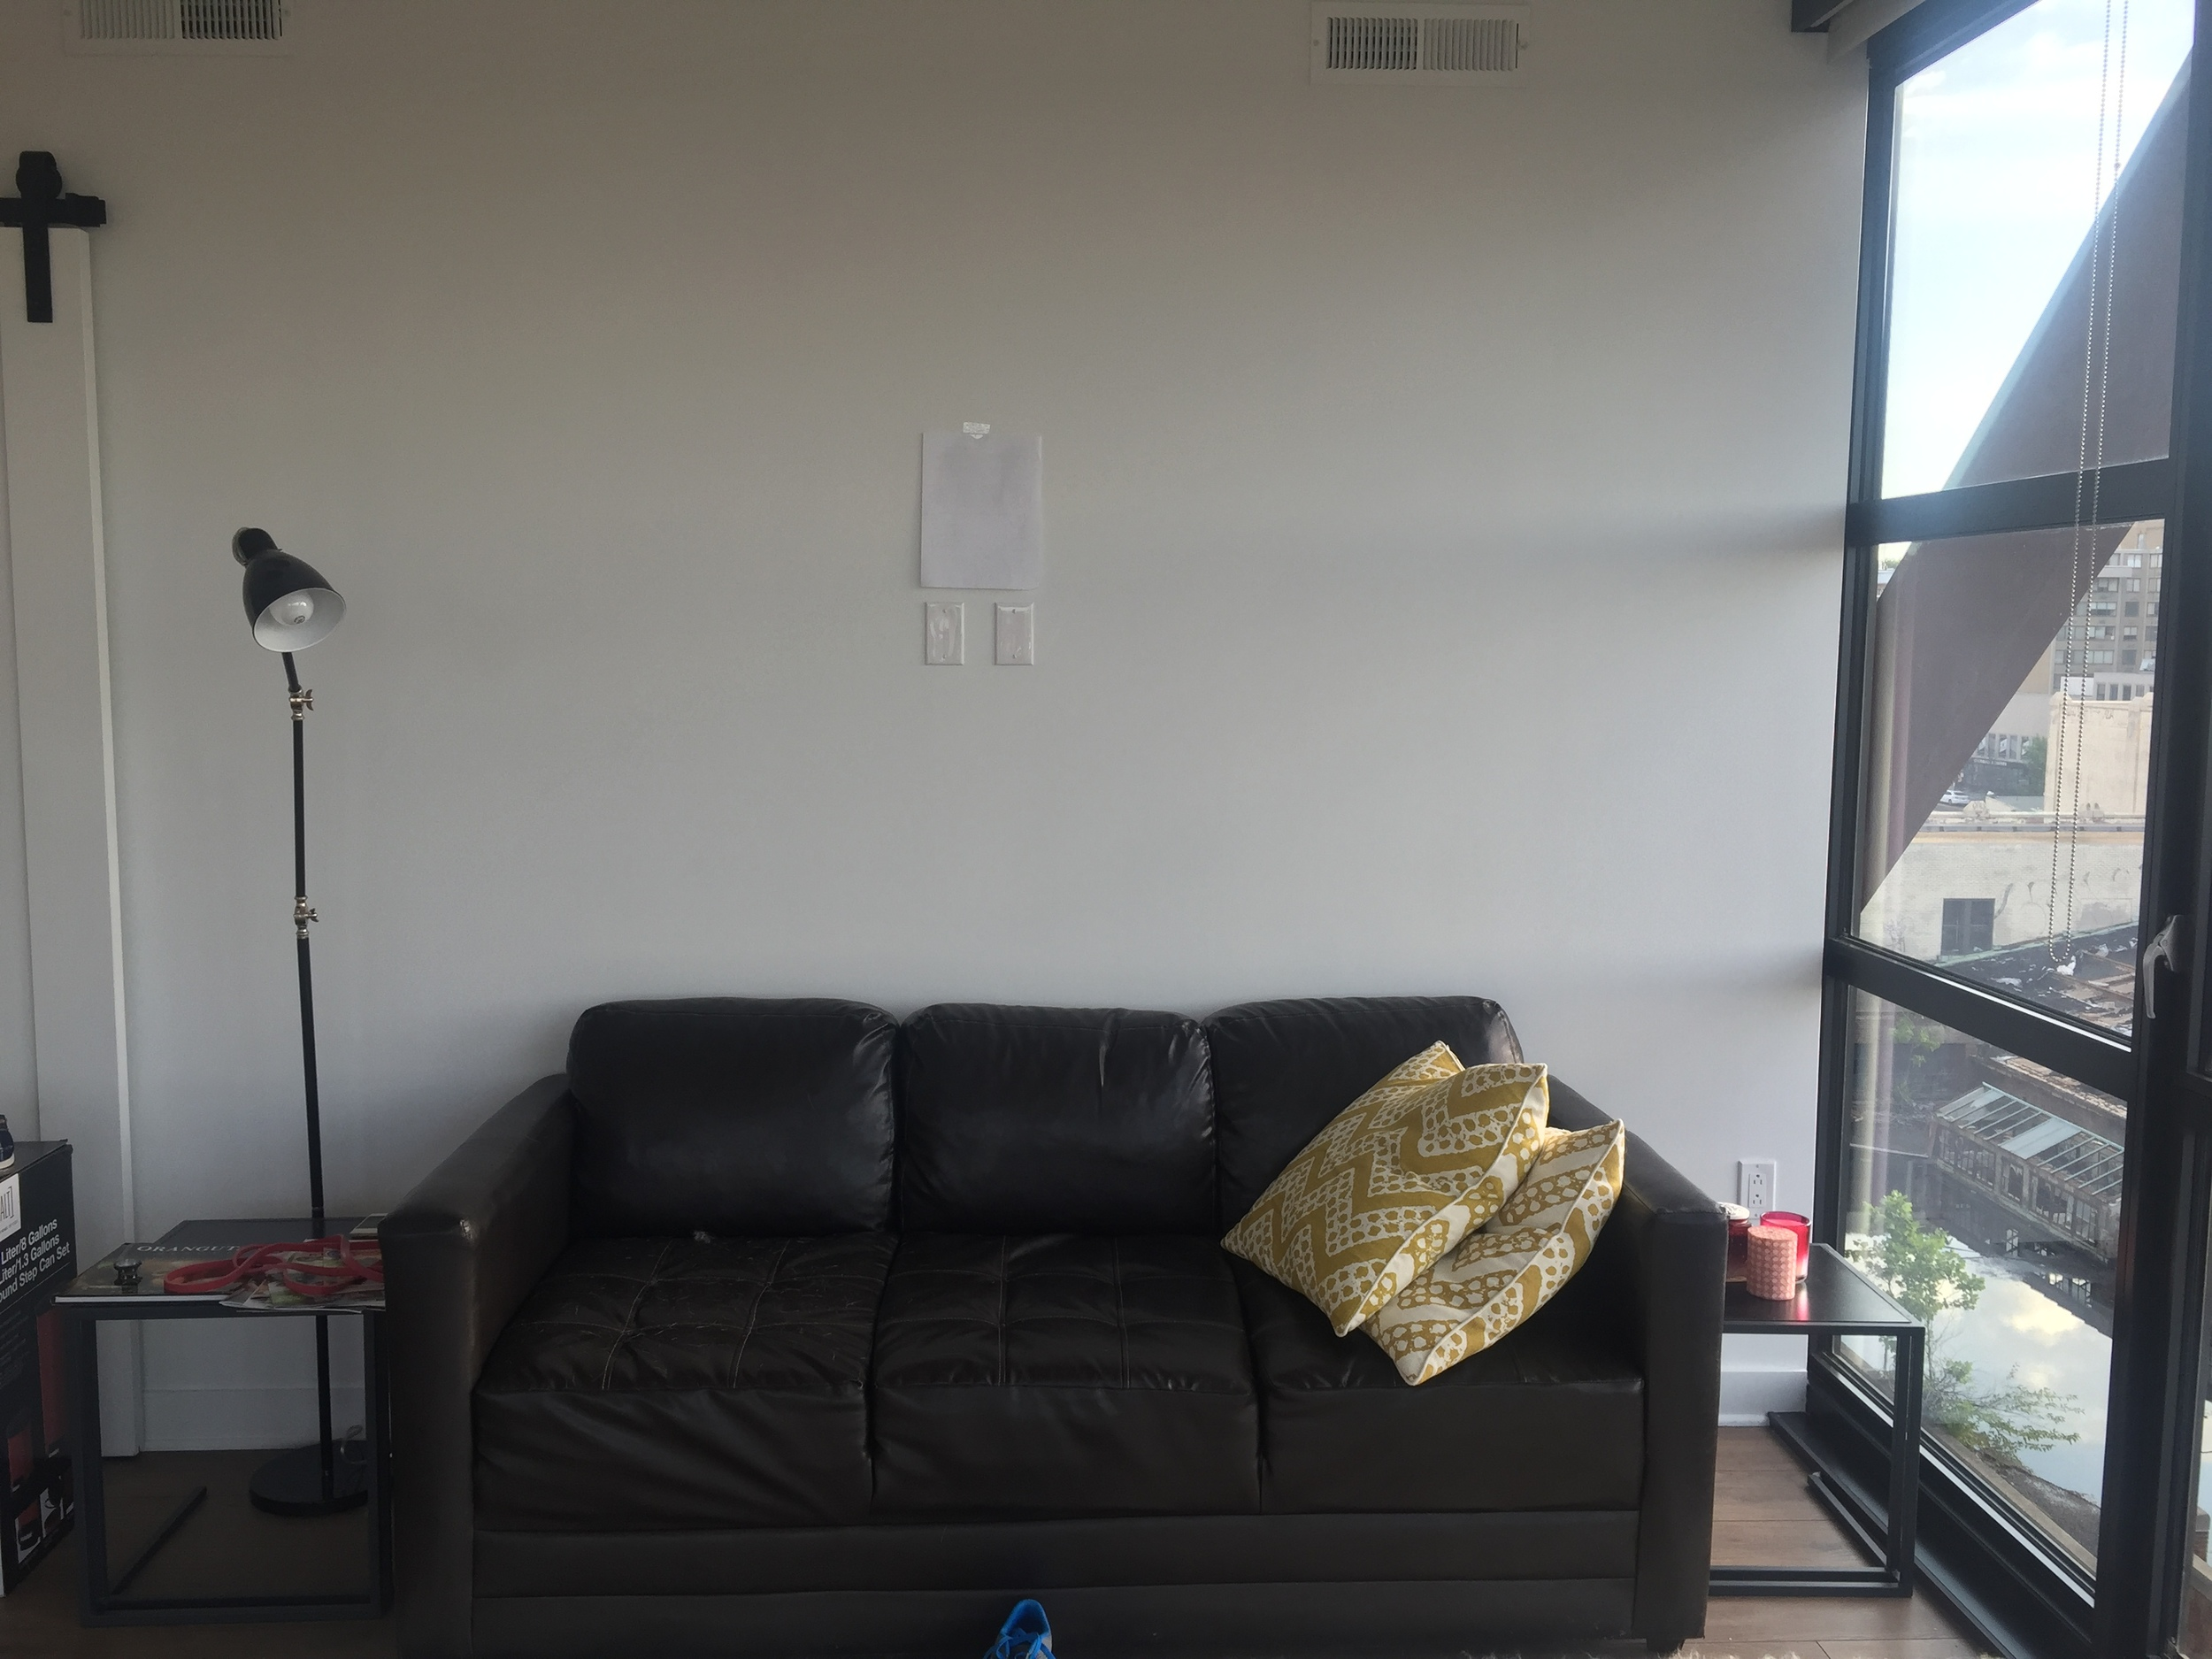 CORRECT -Shows the furniture, picture taken straight on, paper taped to wall.